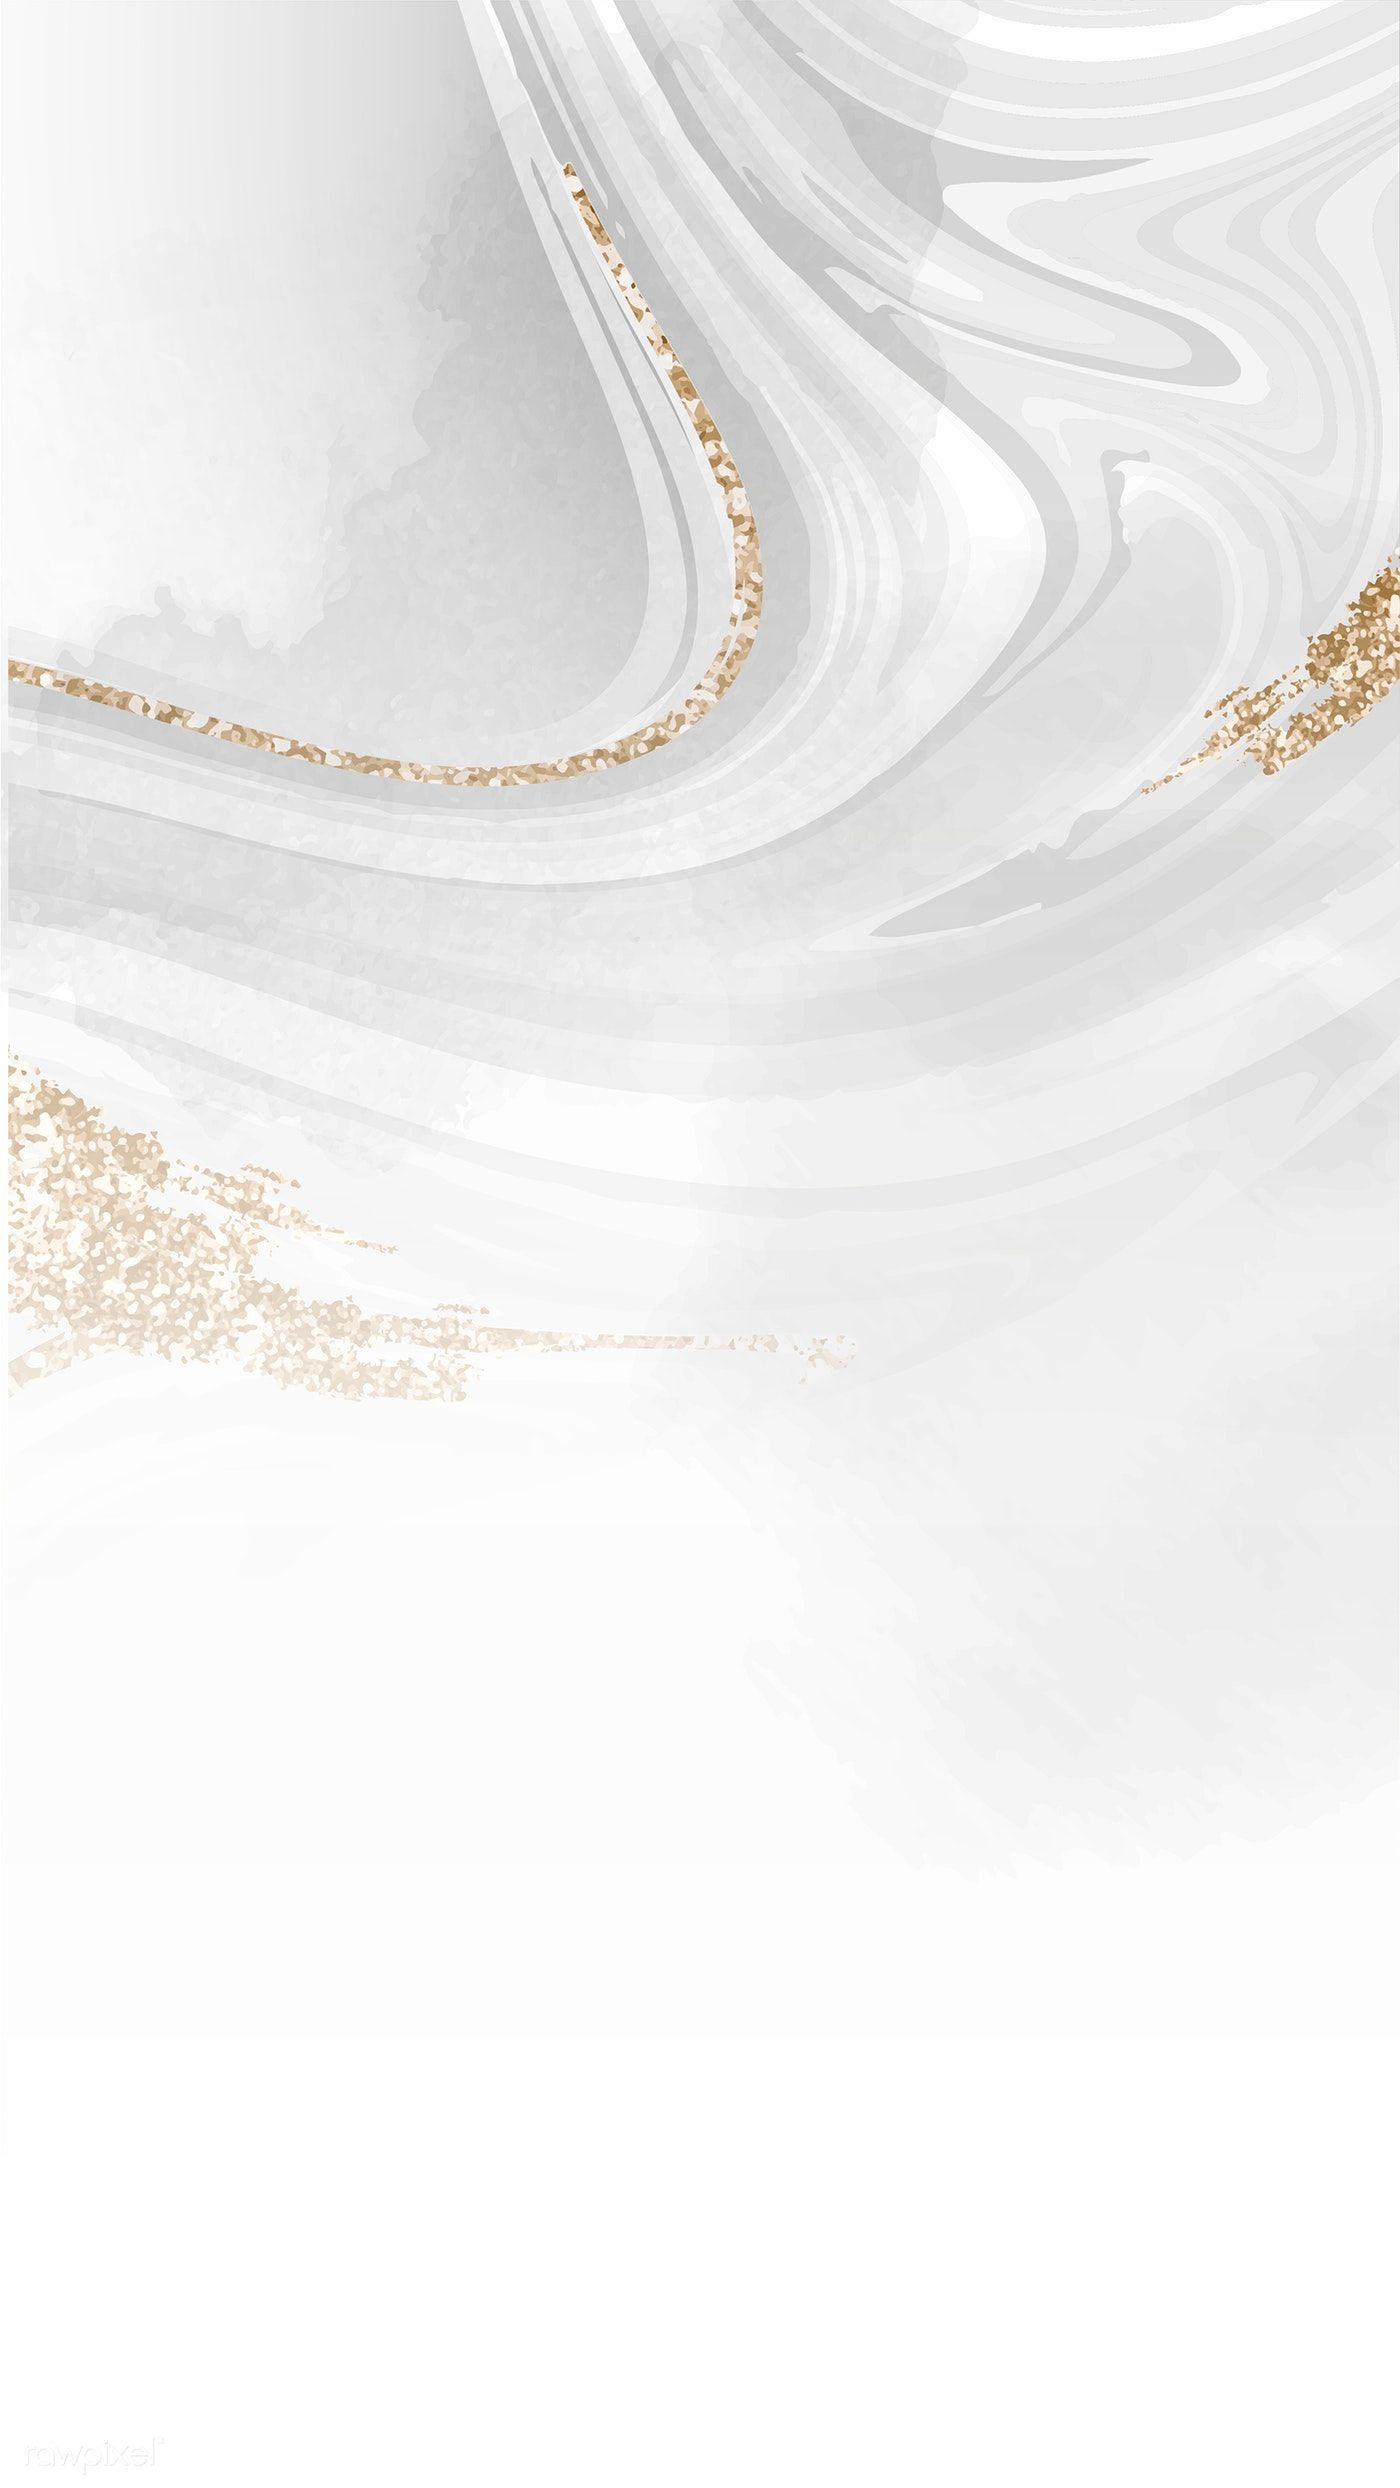 Download Premium Vector Of White Fluid Patterned Mobile Phone Wallpaper Fony Dlya Blogov Fonovye Uzory Dizajn Lentami